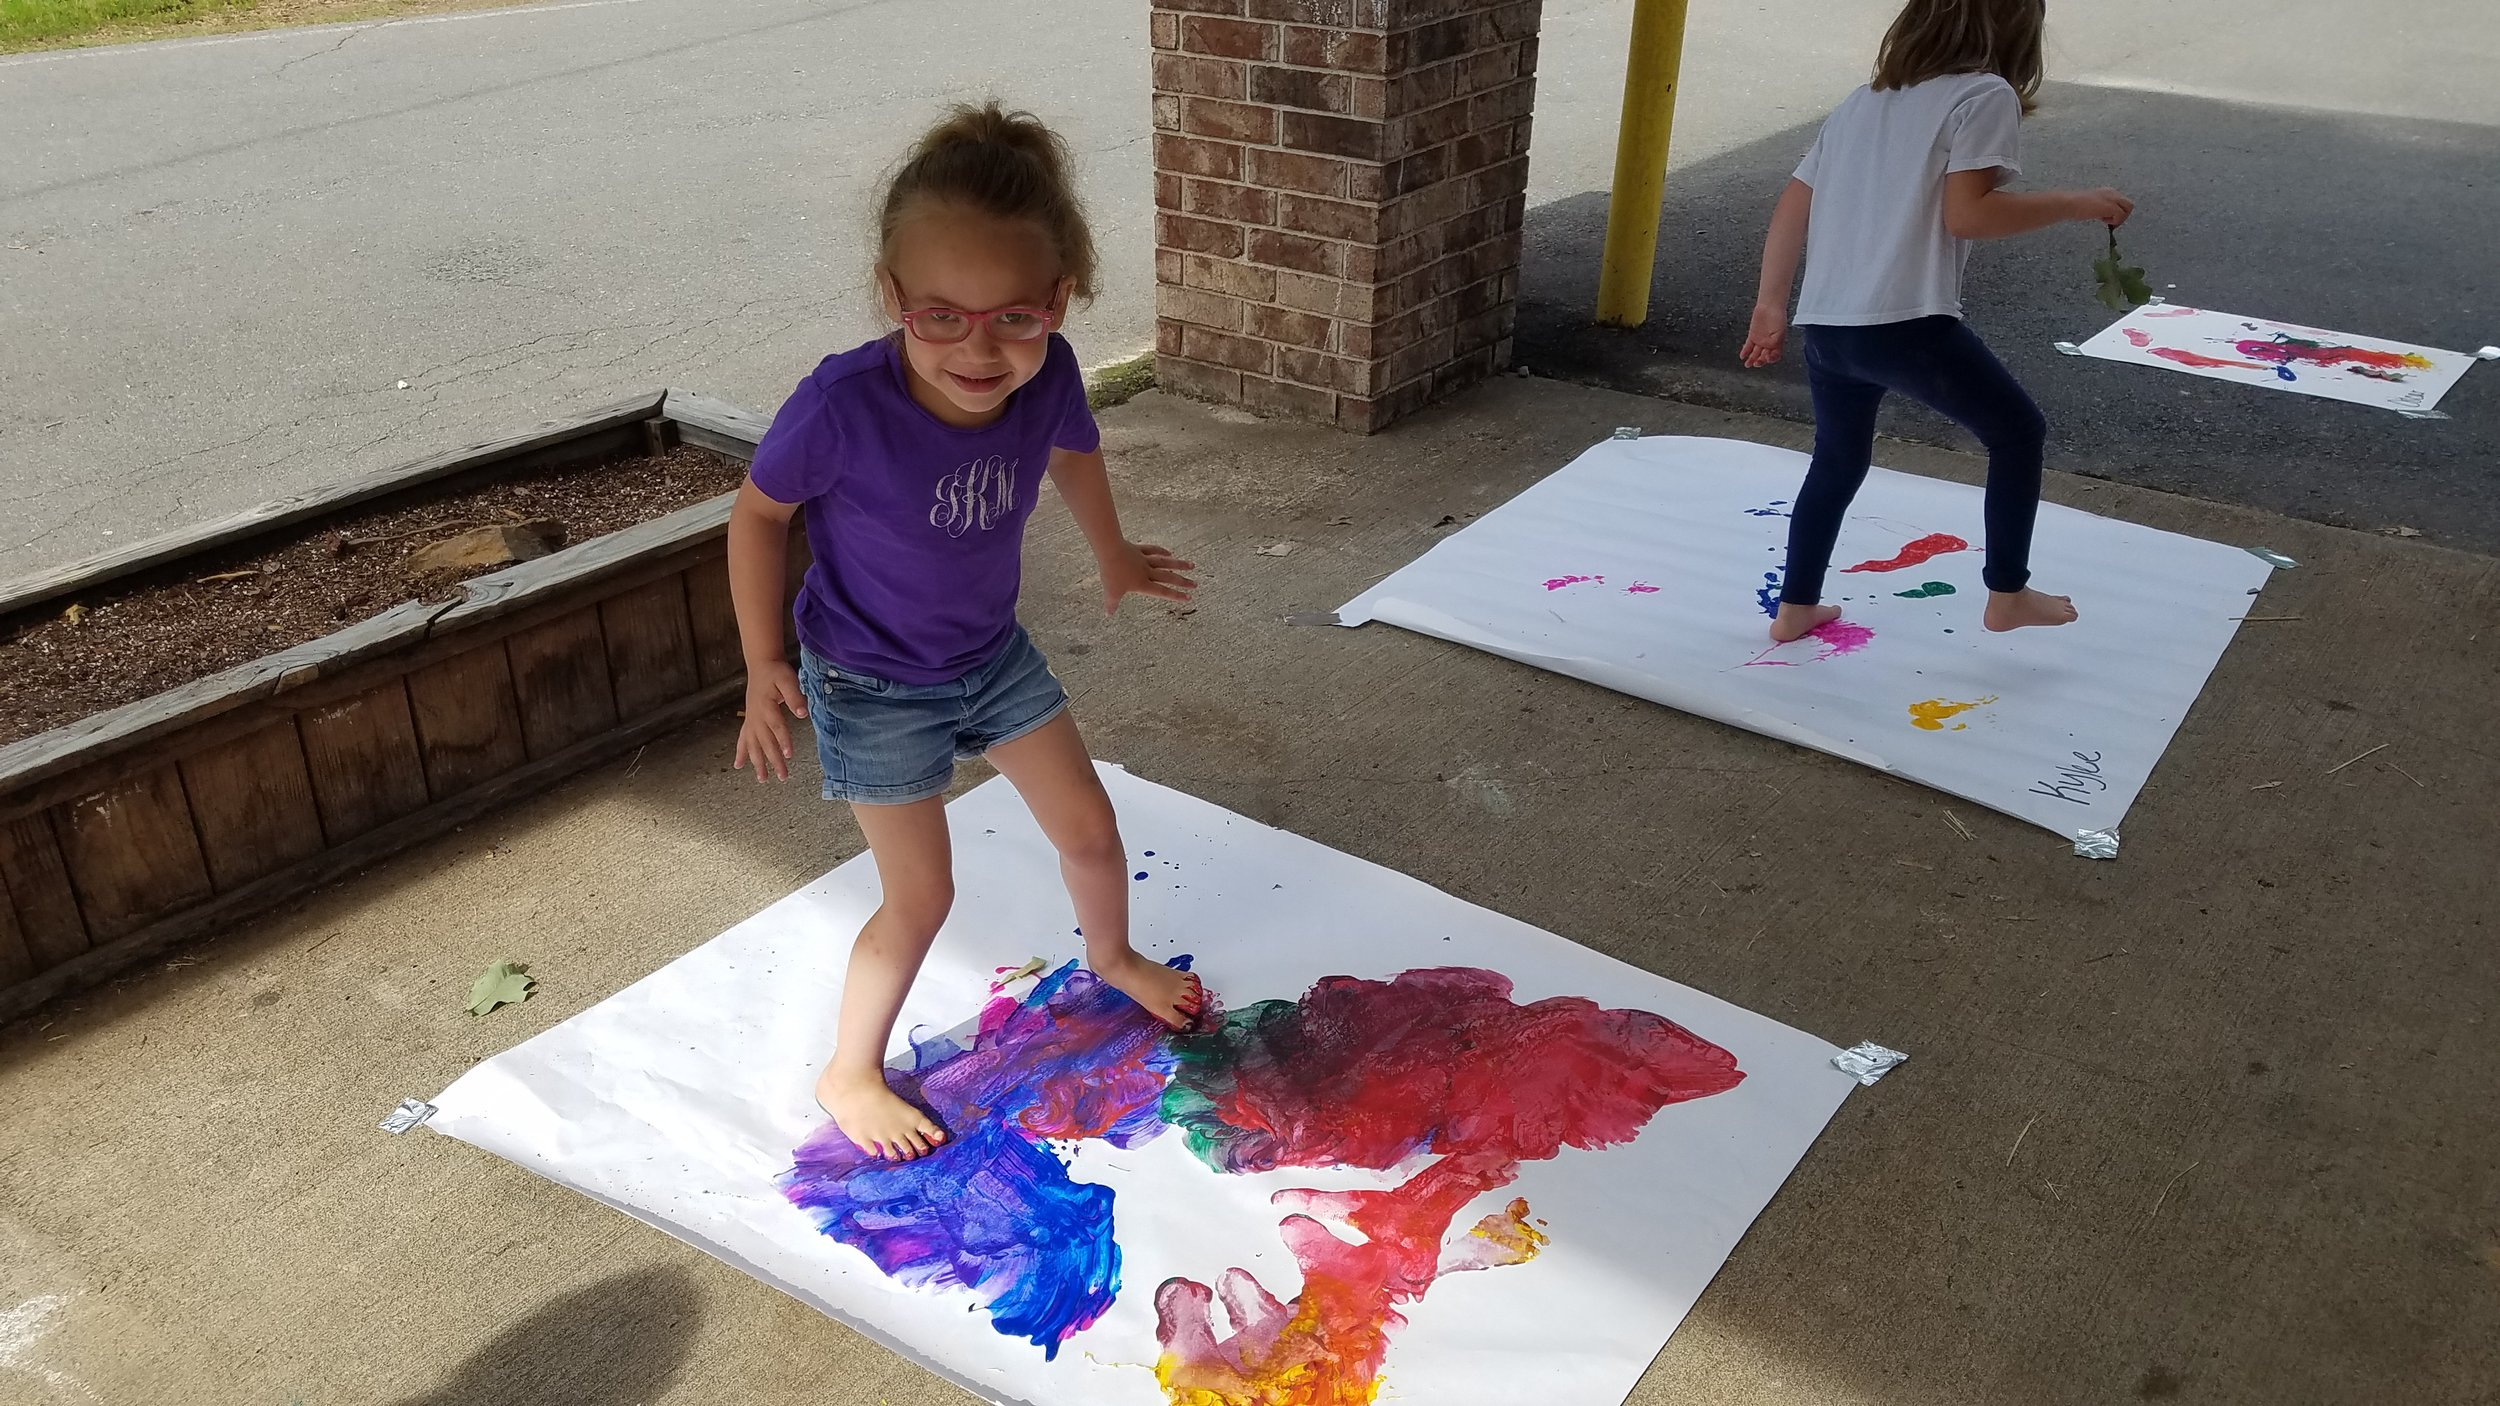 Cabot East Justice Childcare having fun messy paint sunny day 4.jpg